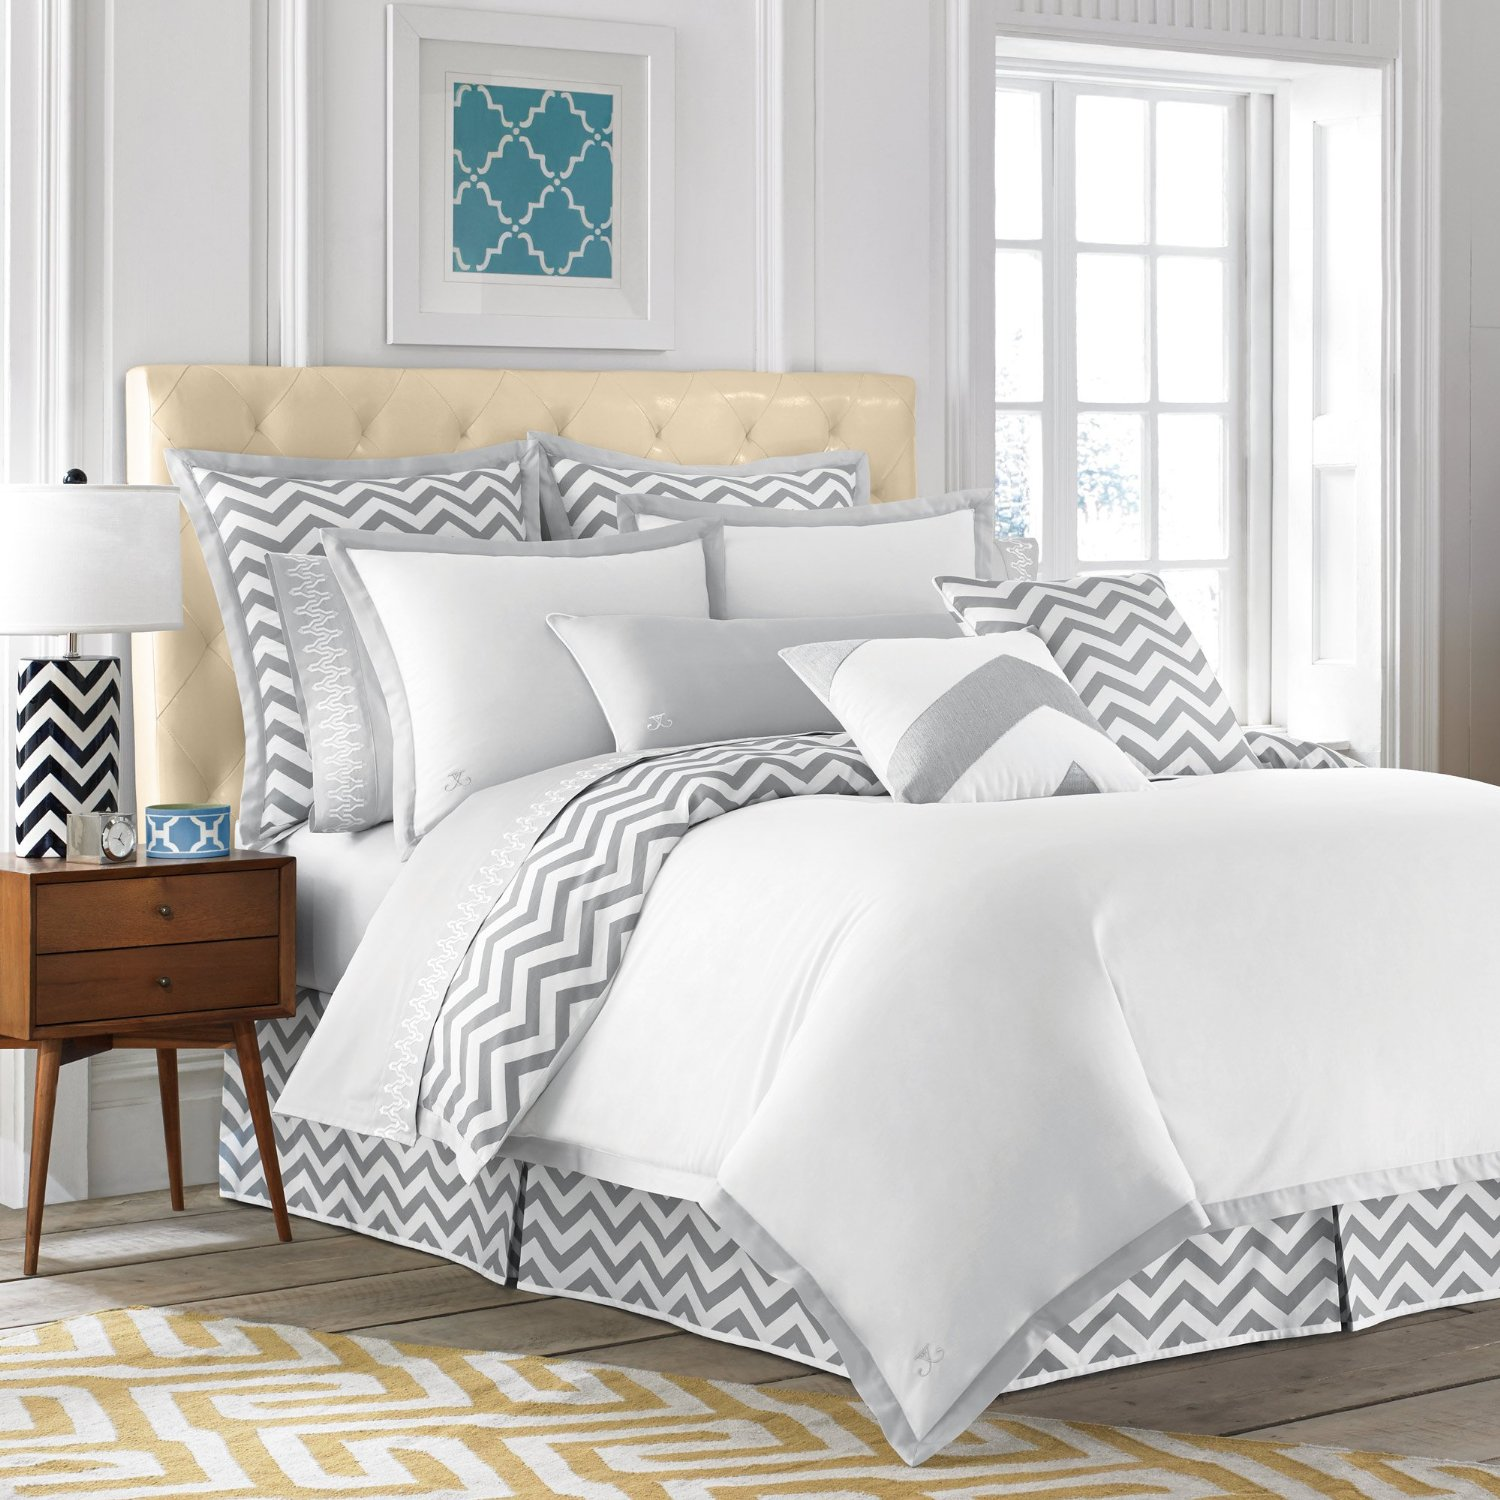 total fab grey and white chevron bedding. Black Bedroom Furniture Sets. Home Design Ideas